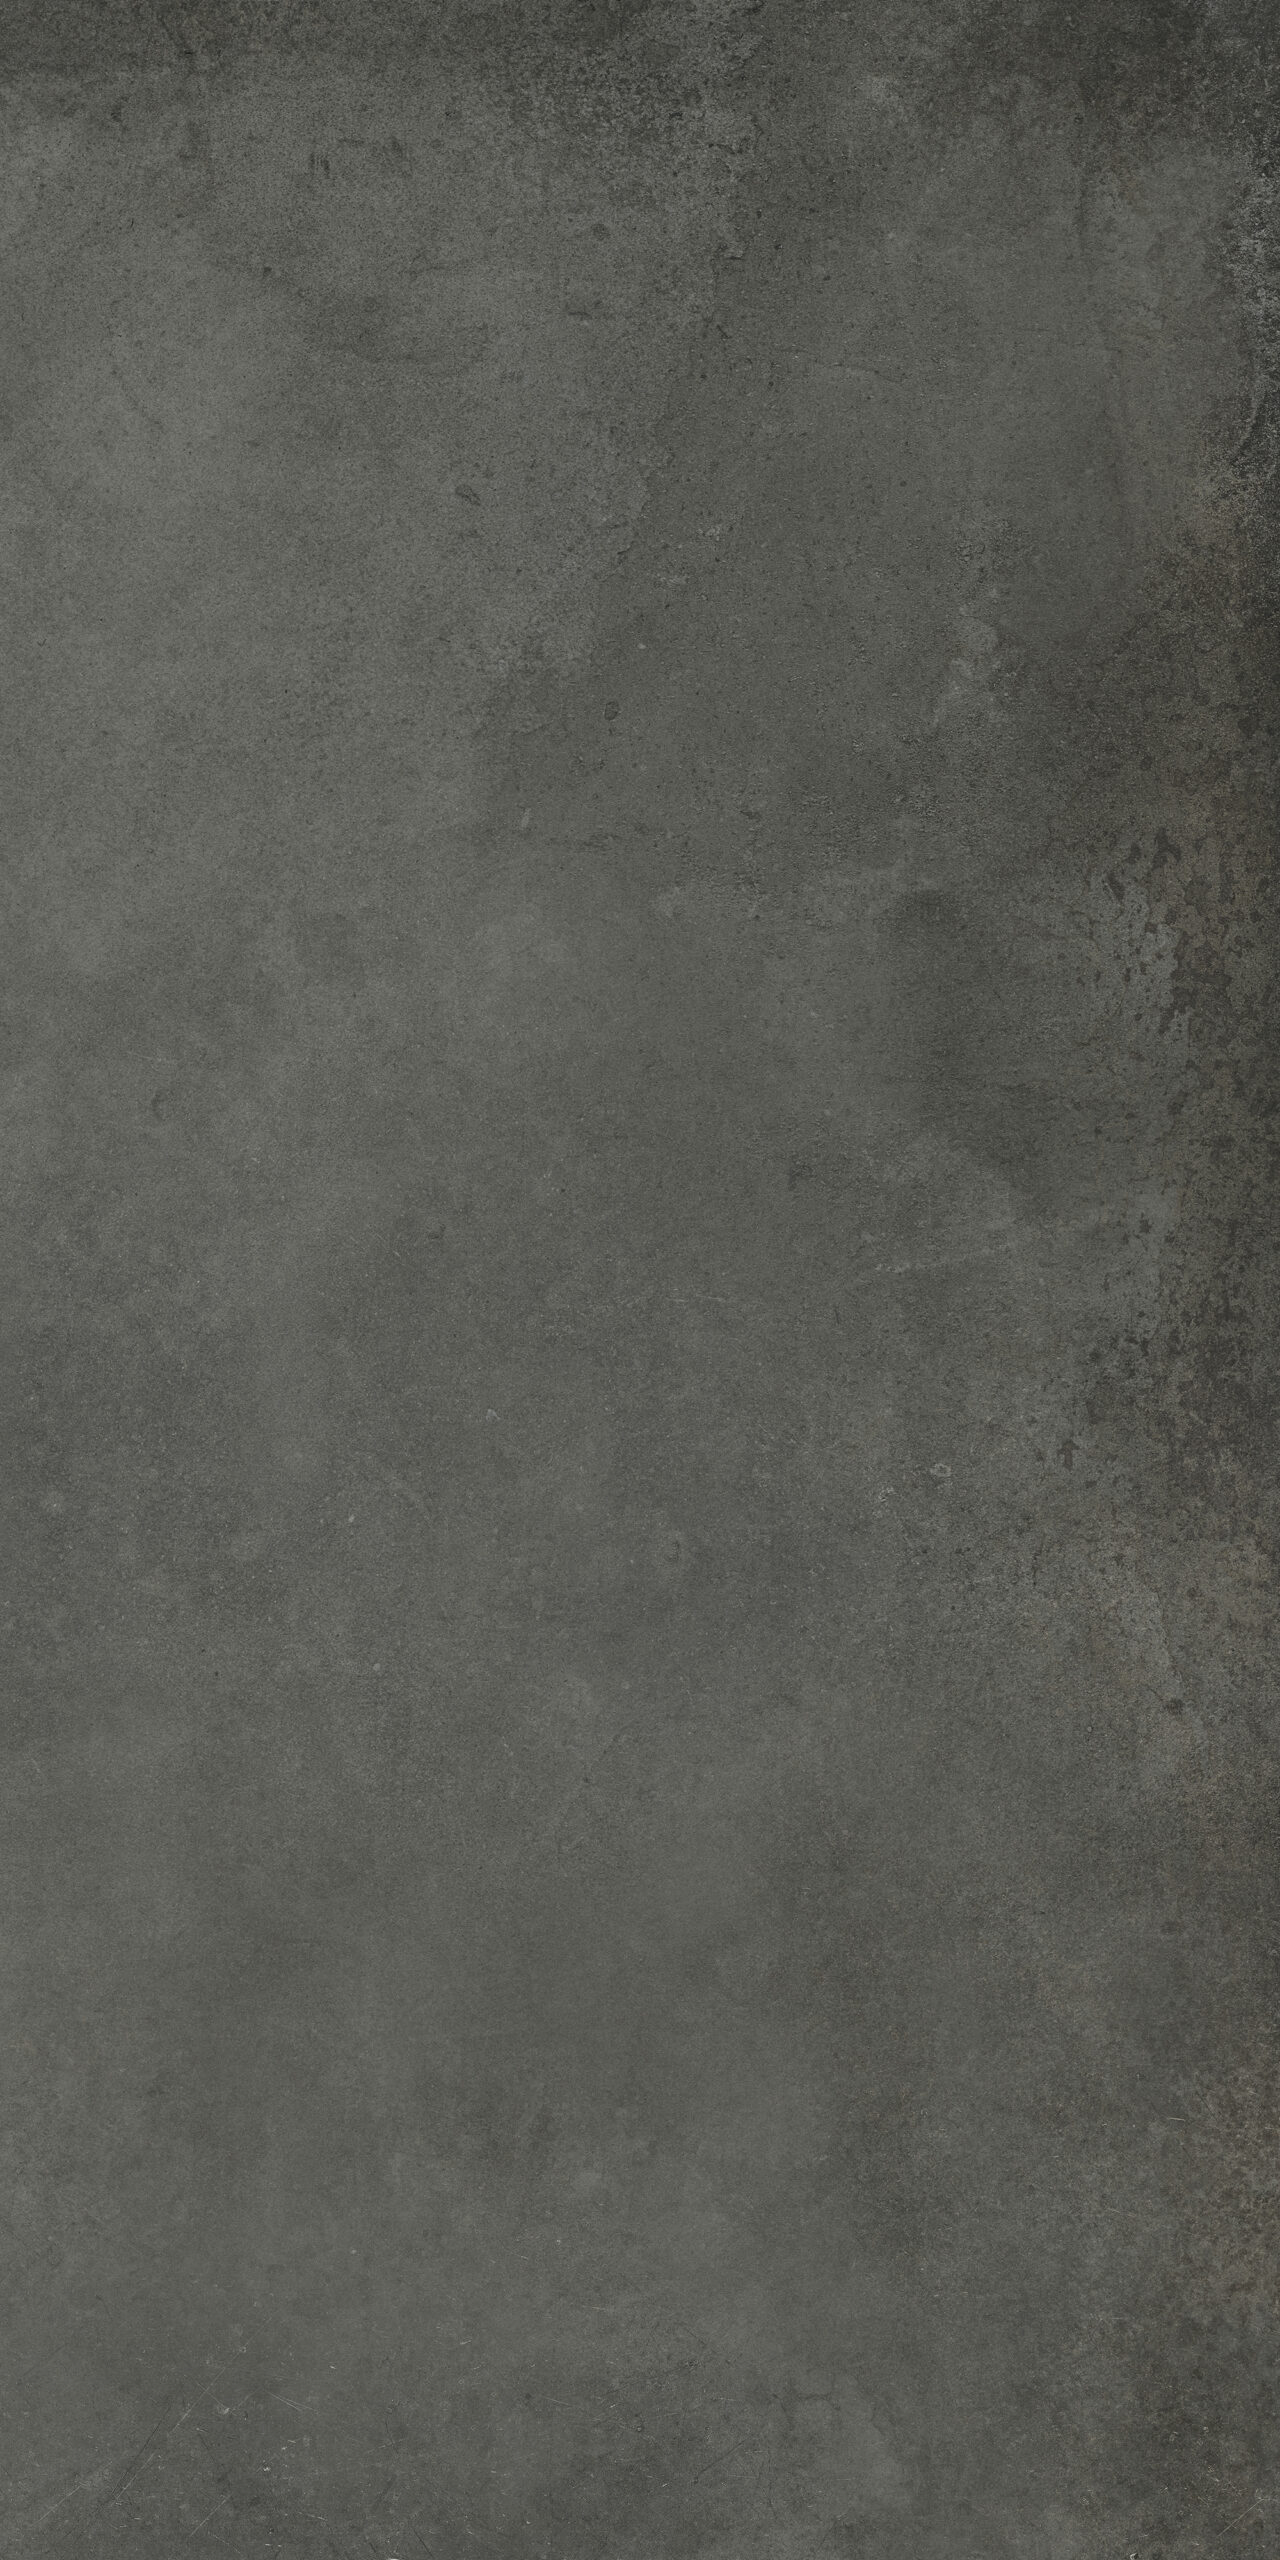 65 526 16x32 Ceraforge Oxide HD Rectified Porcelain Tile scaled